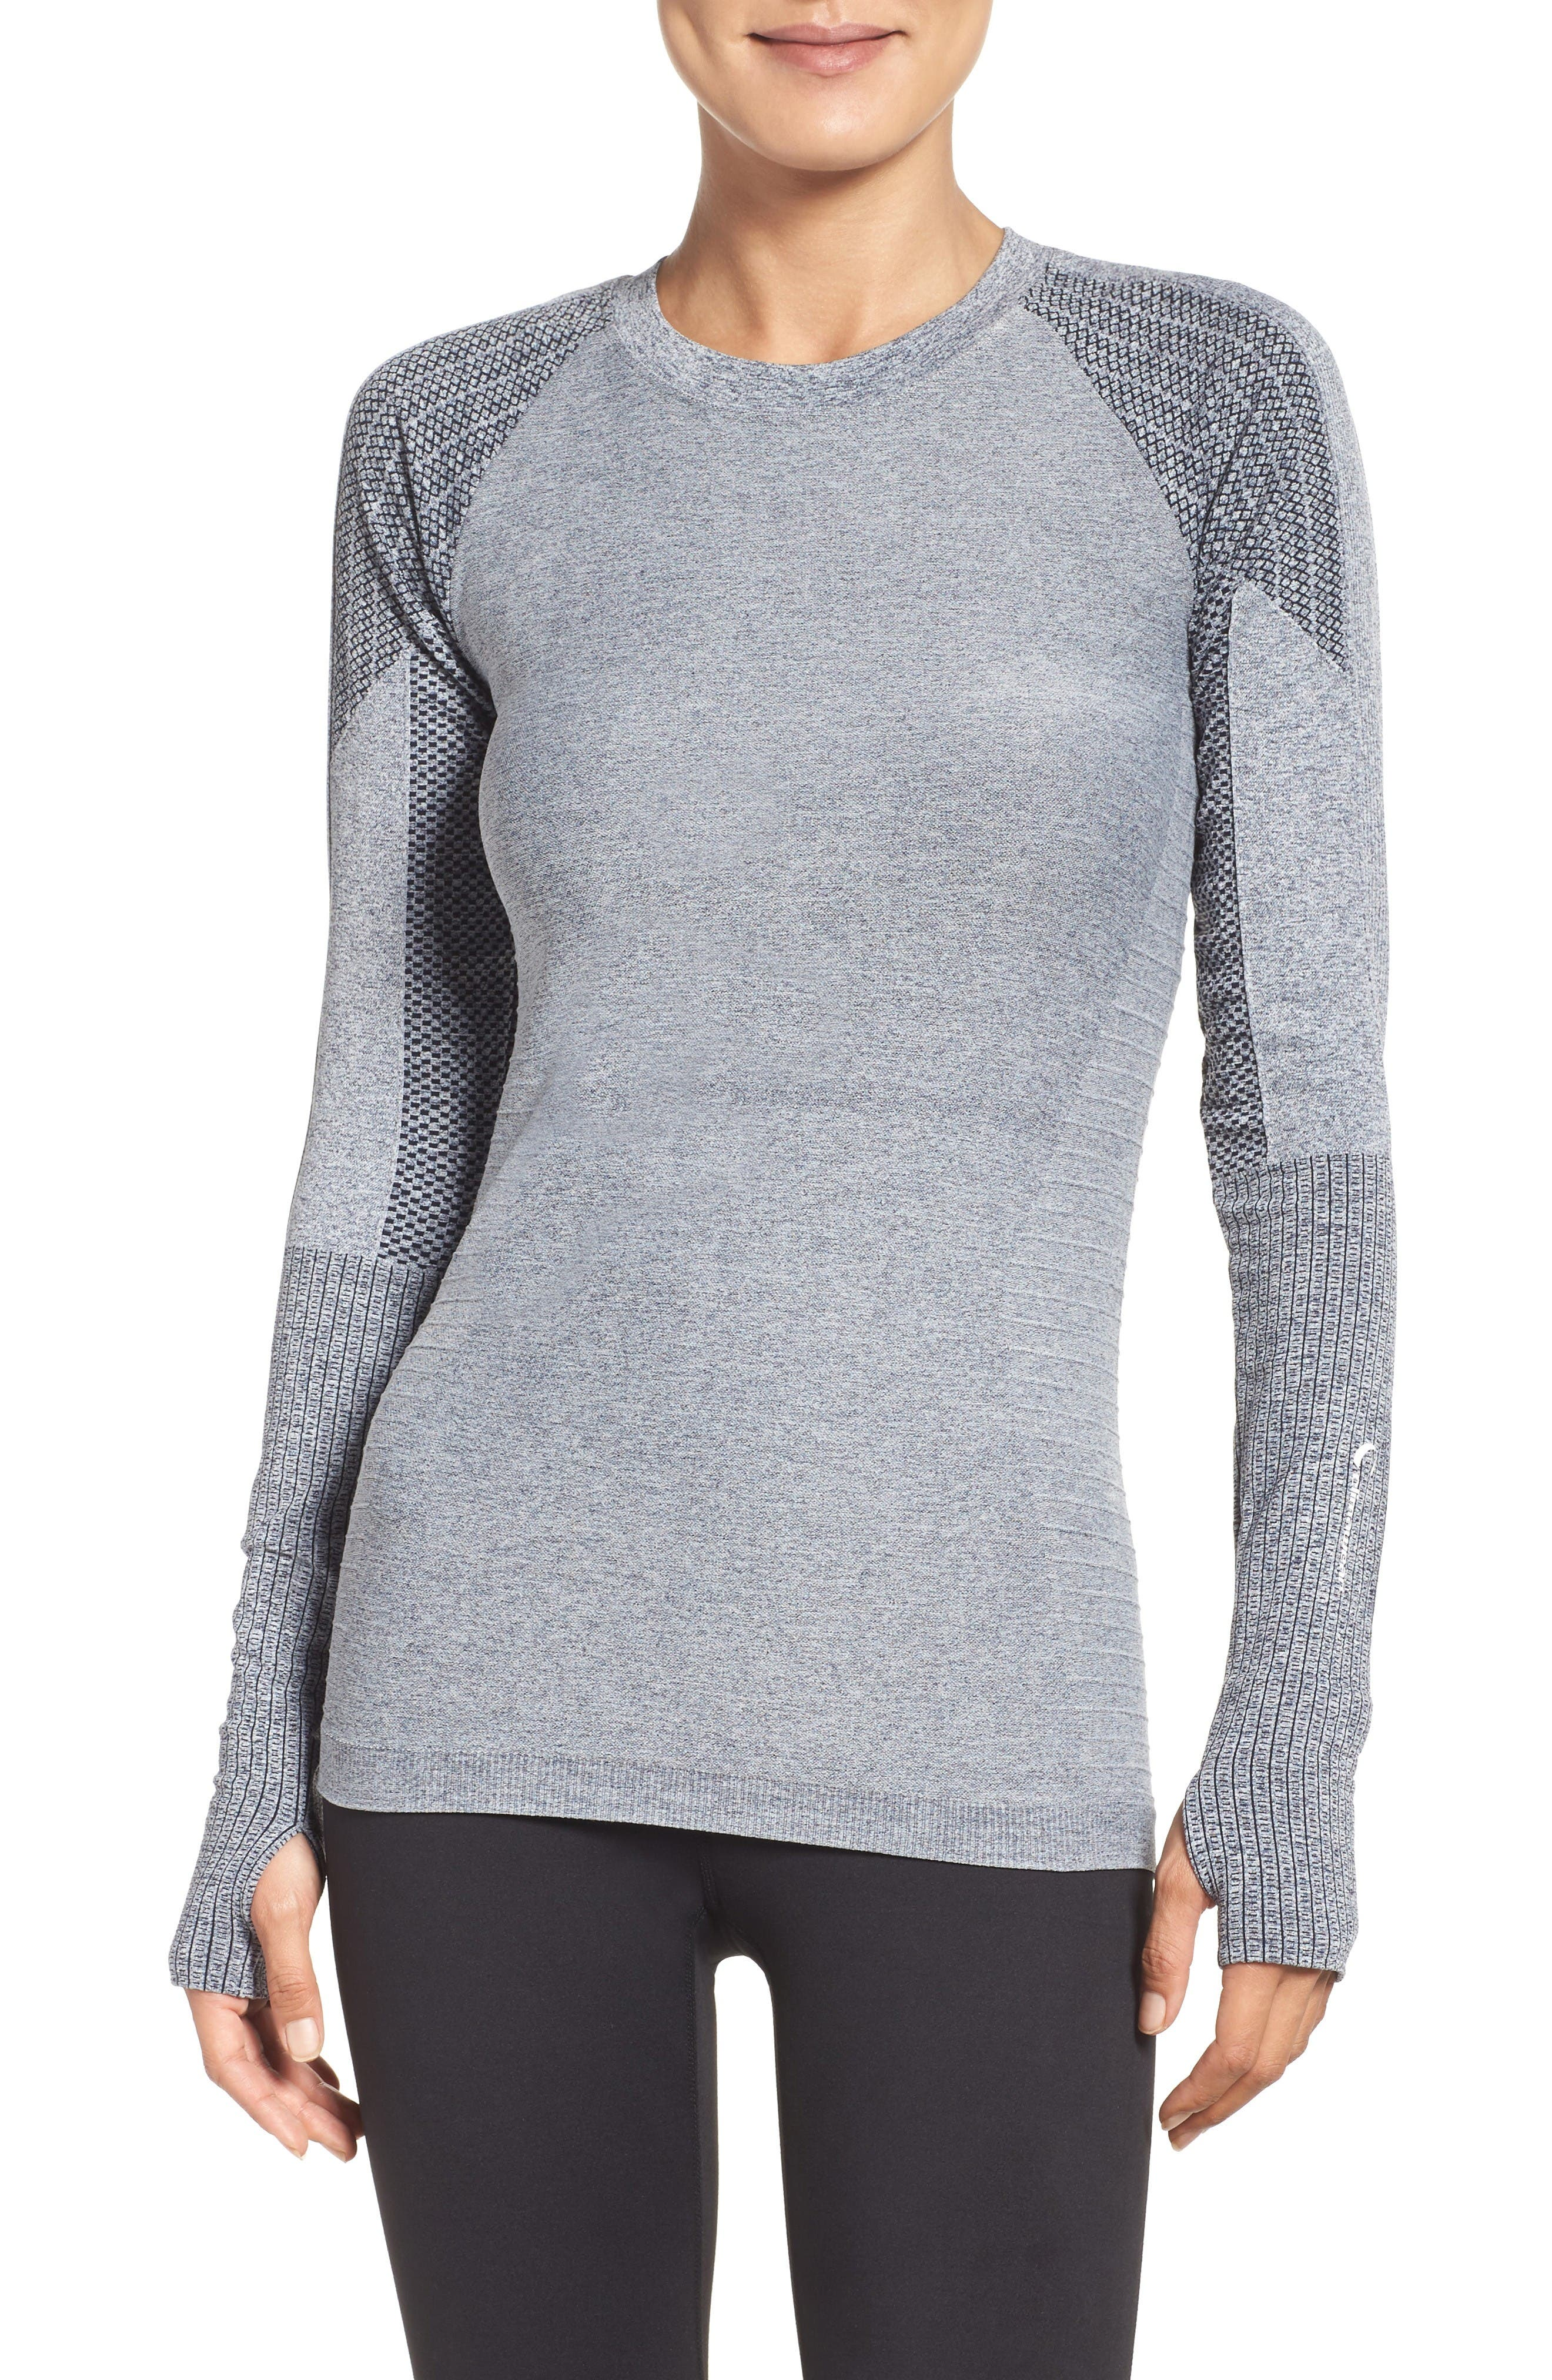 Dynamic Running Top,                         Main,                         color, Grey/ White Melange